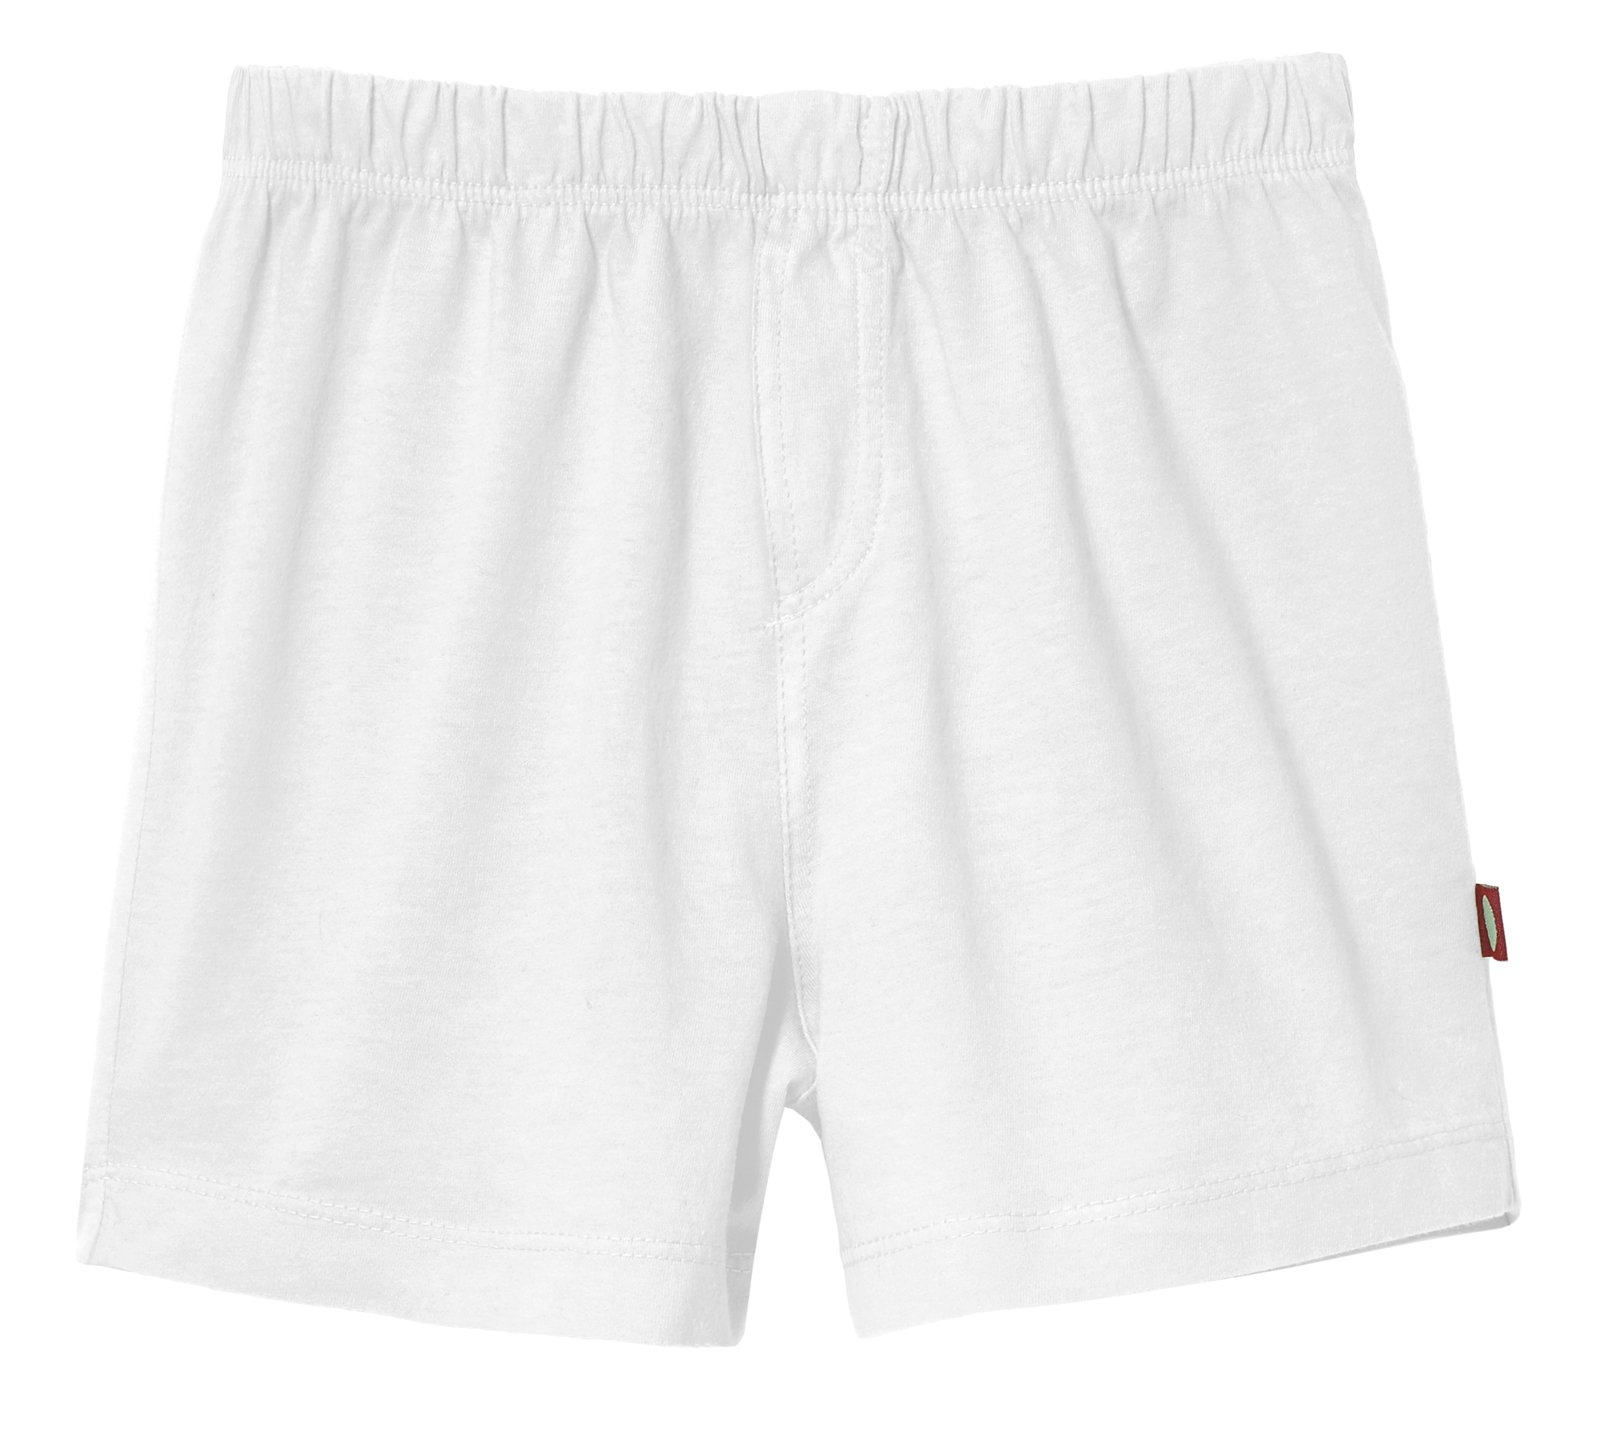 City Threads Boys Boxer Shorts Underwear Briefs in All Soft Cotton Sensitive Skin and SPD for Active Kids, White, 14